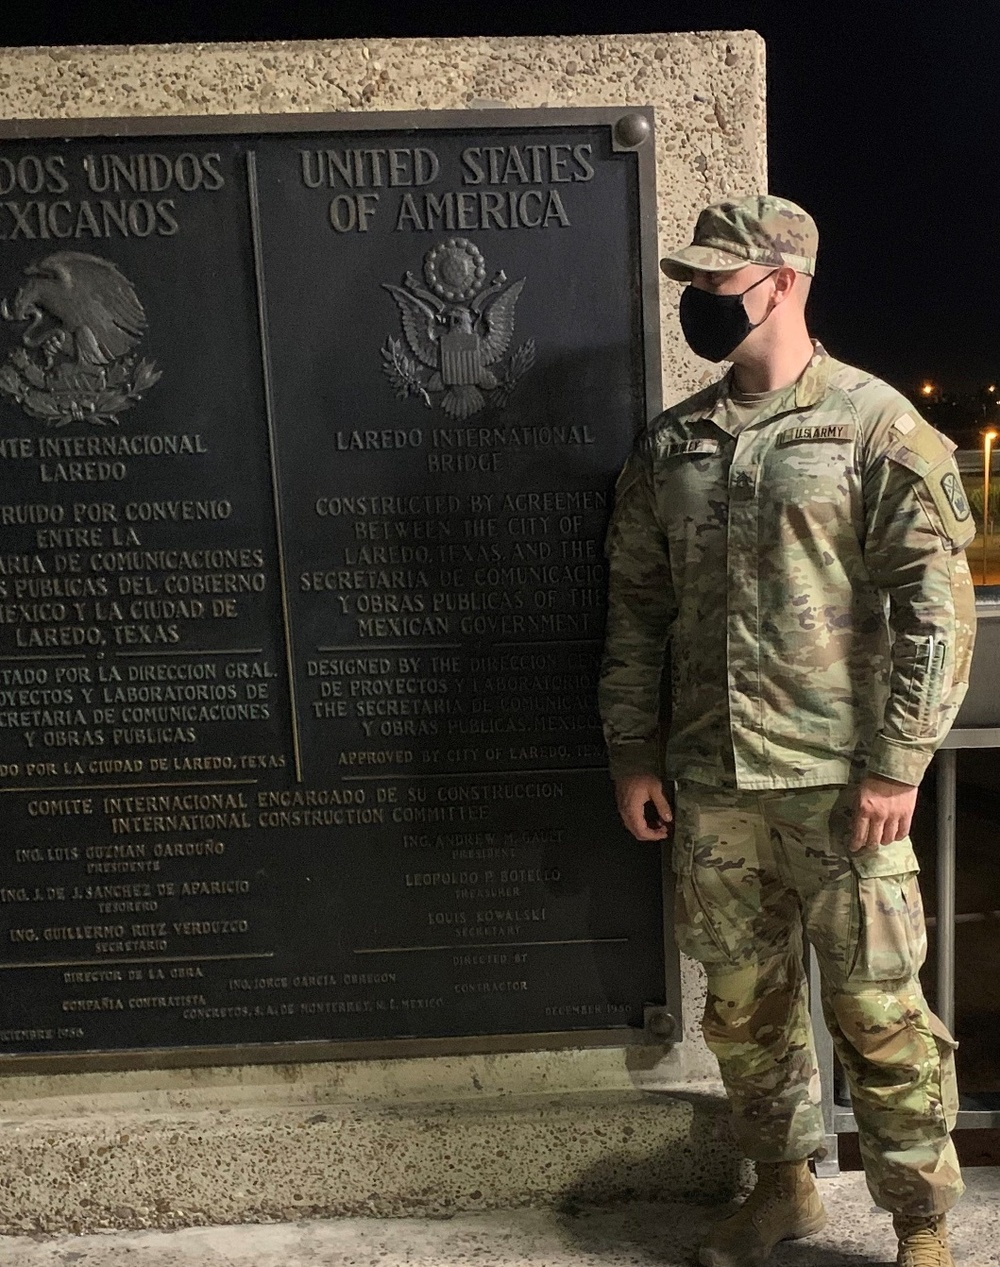 Tennessee Guardsman Renders CPR to Pedestrian and Saves Life